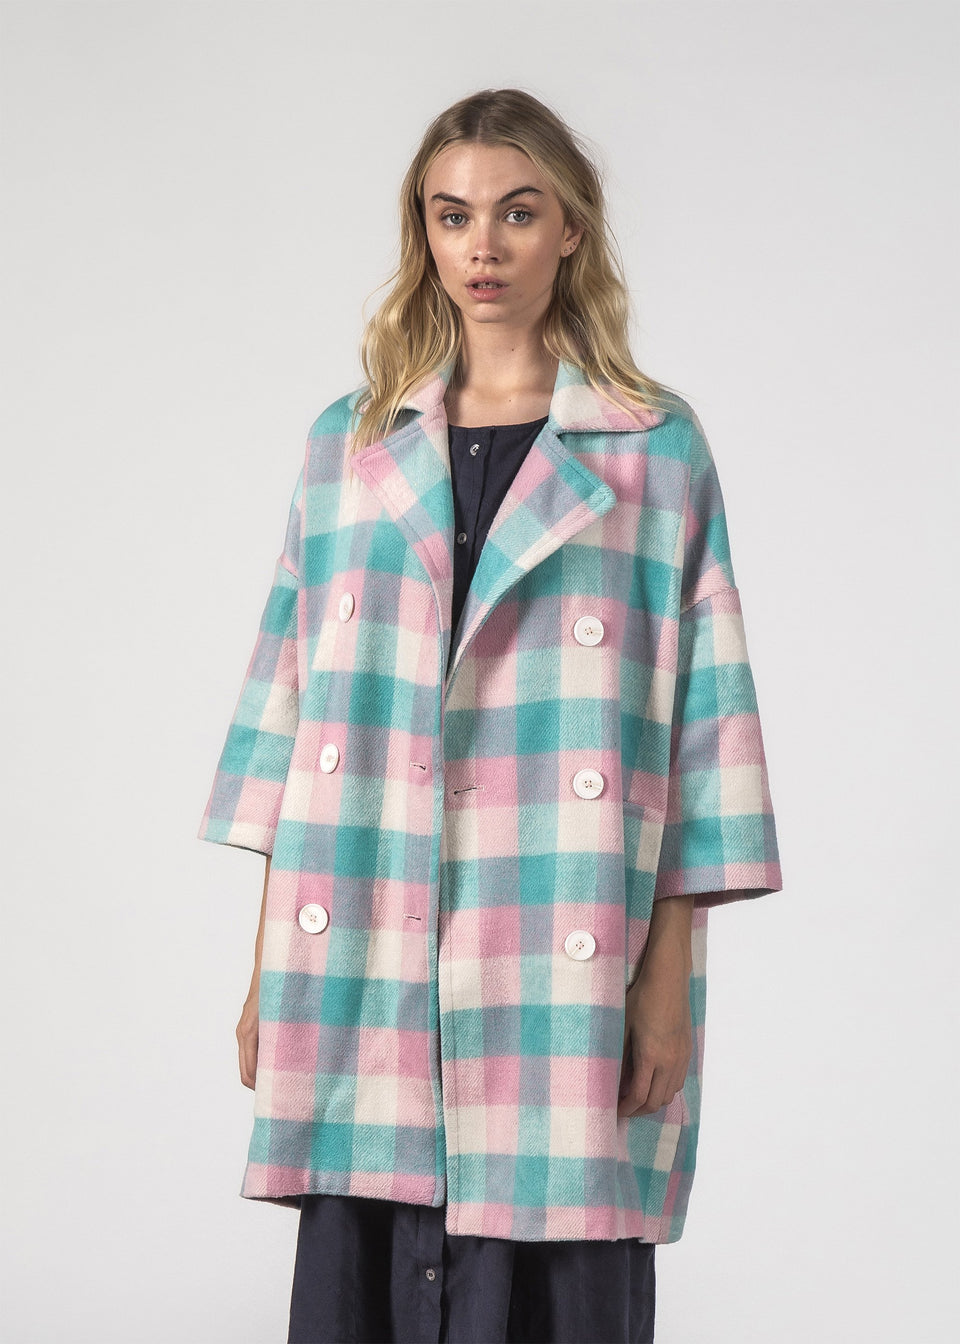 Thing Thing Trixie Coat Pastel Check - Stencil